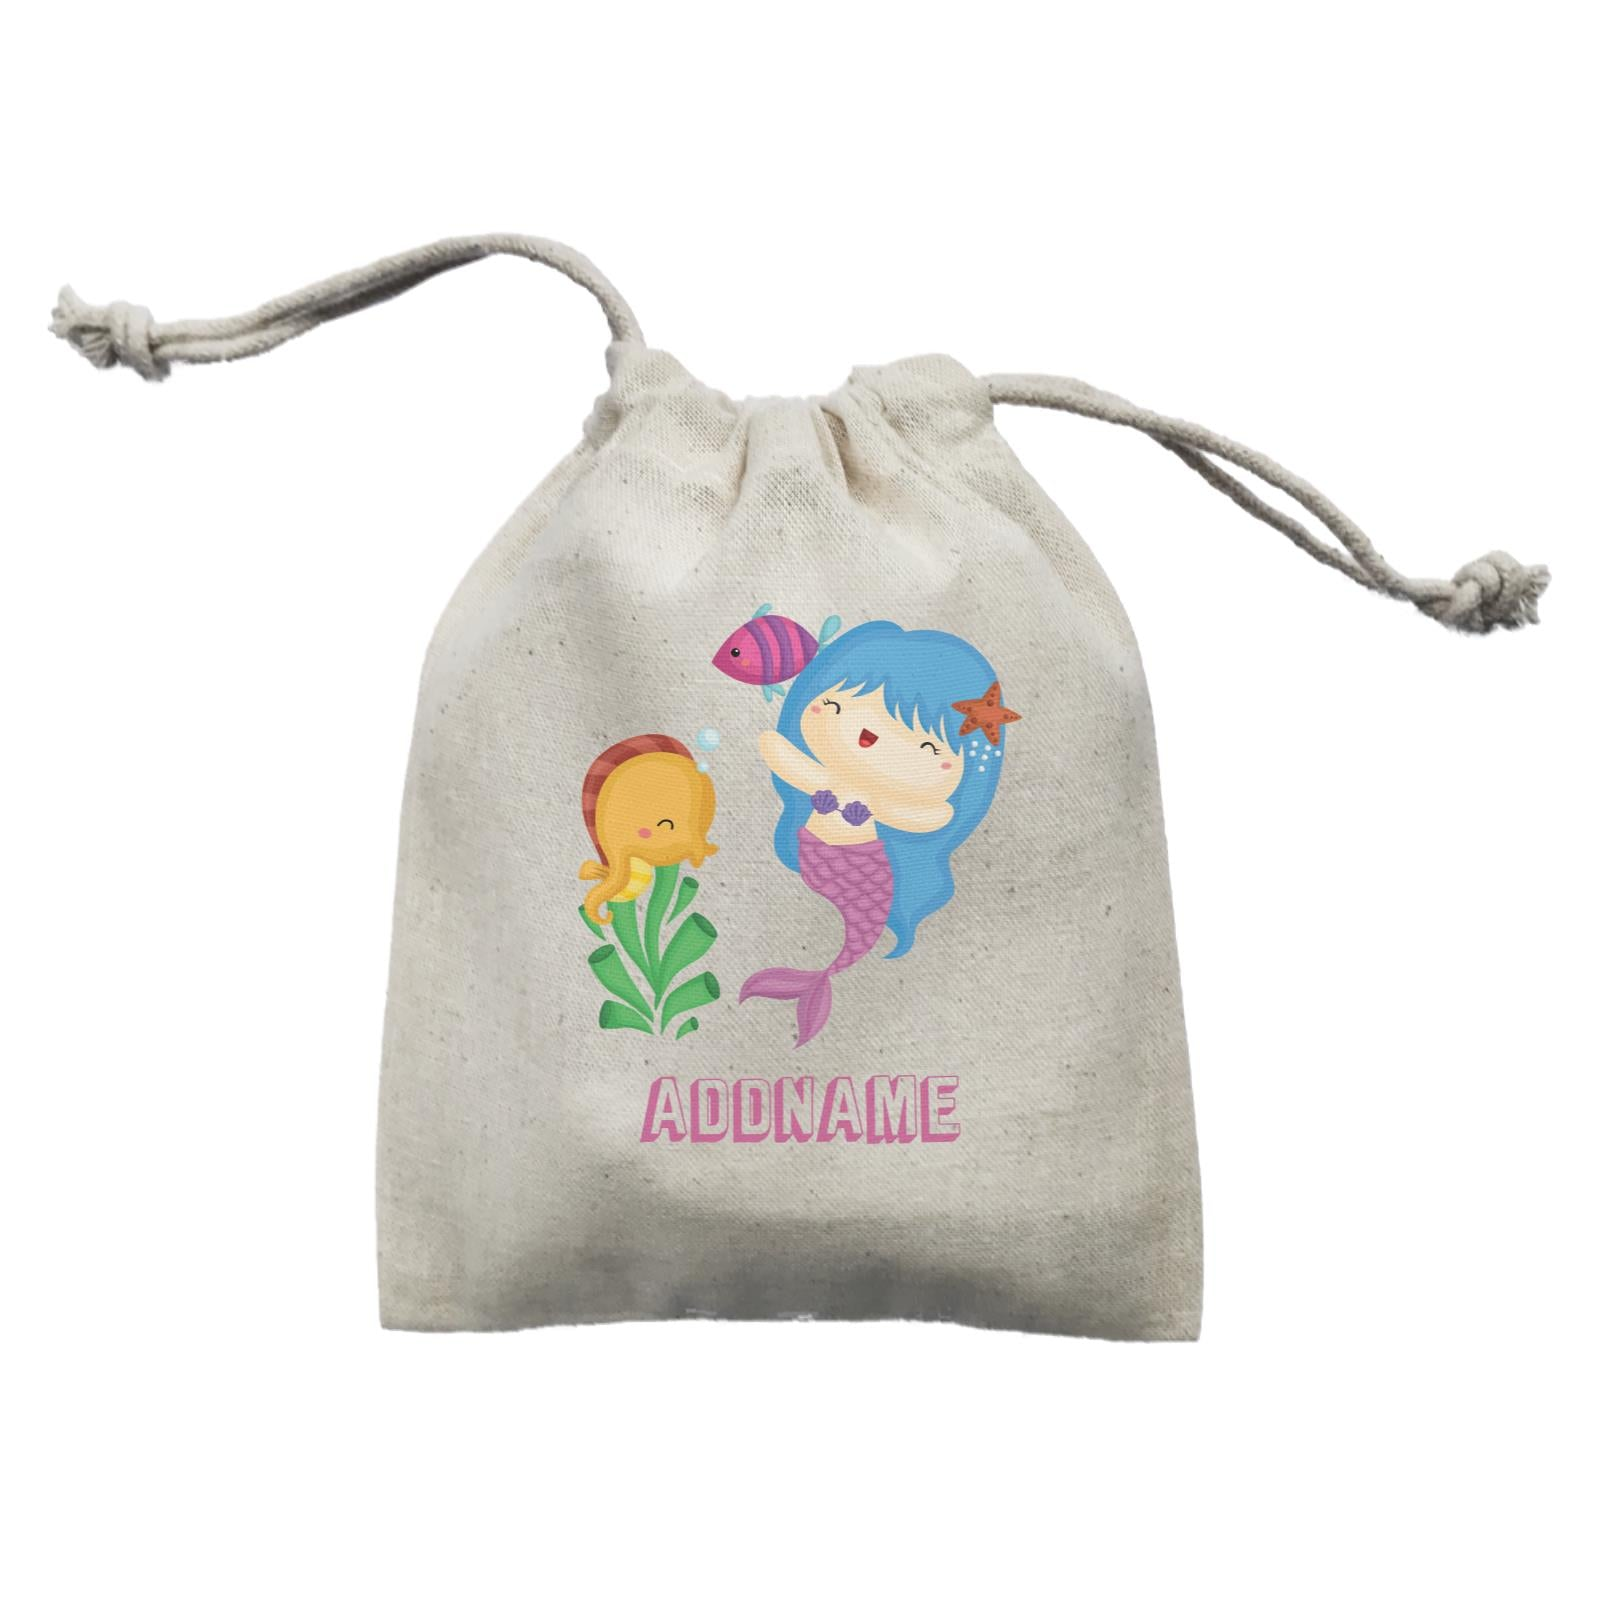 Birthday Mermaid Blue Hair Mermaid Playing With Seahorse Addname Mini Accessories Mini Pouch